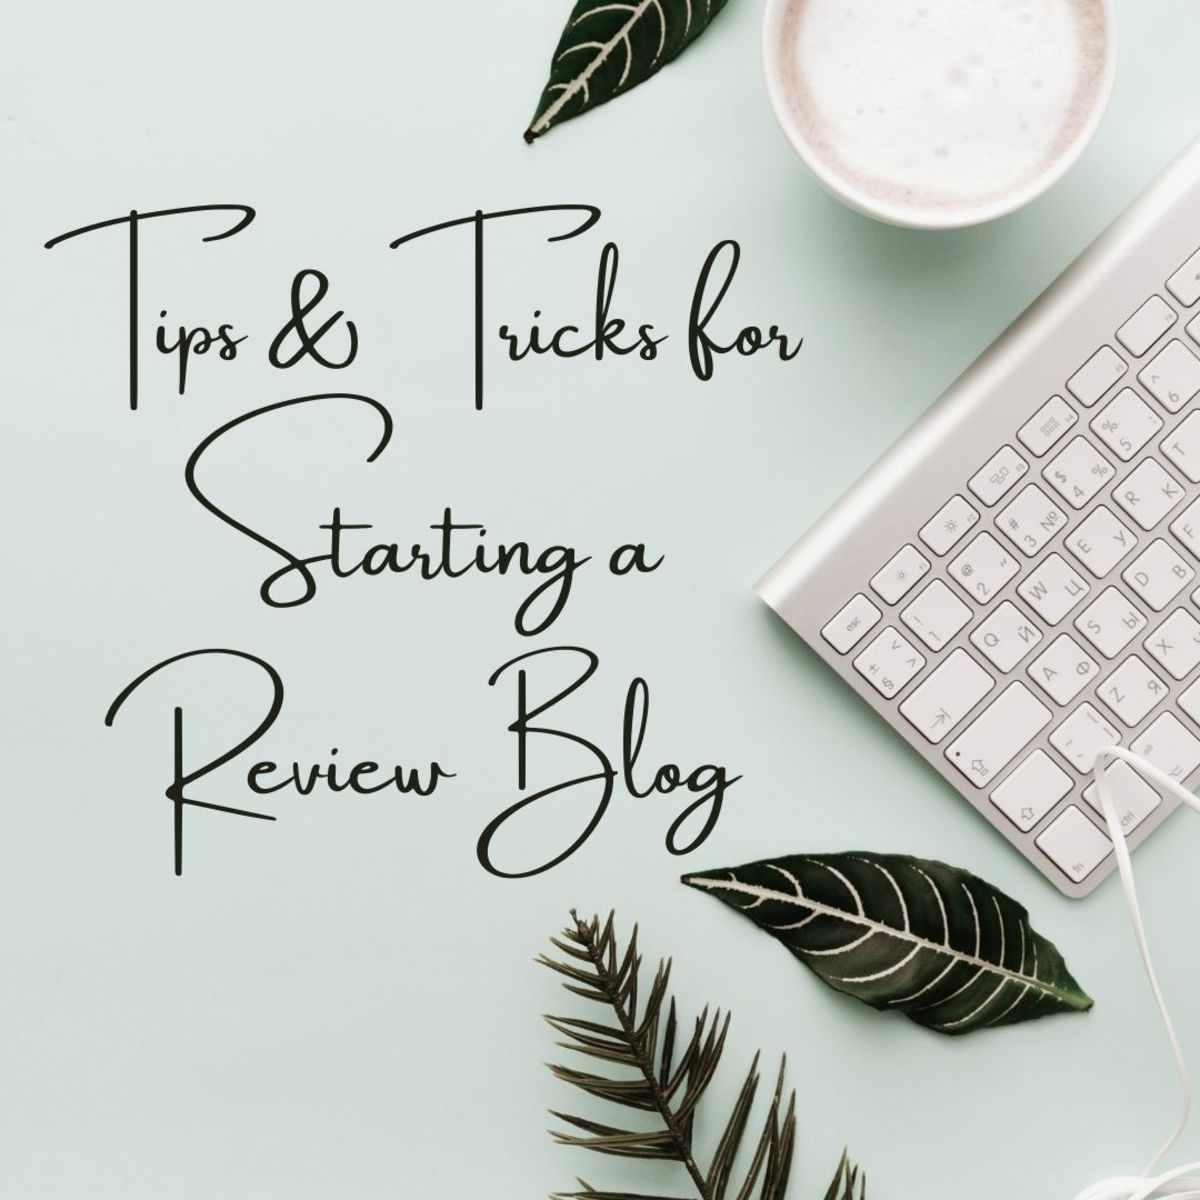 This guide will provide useful advice for those contemplating starting a review blog.